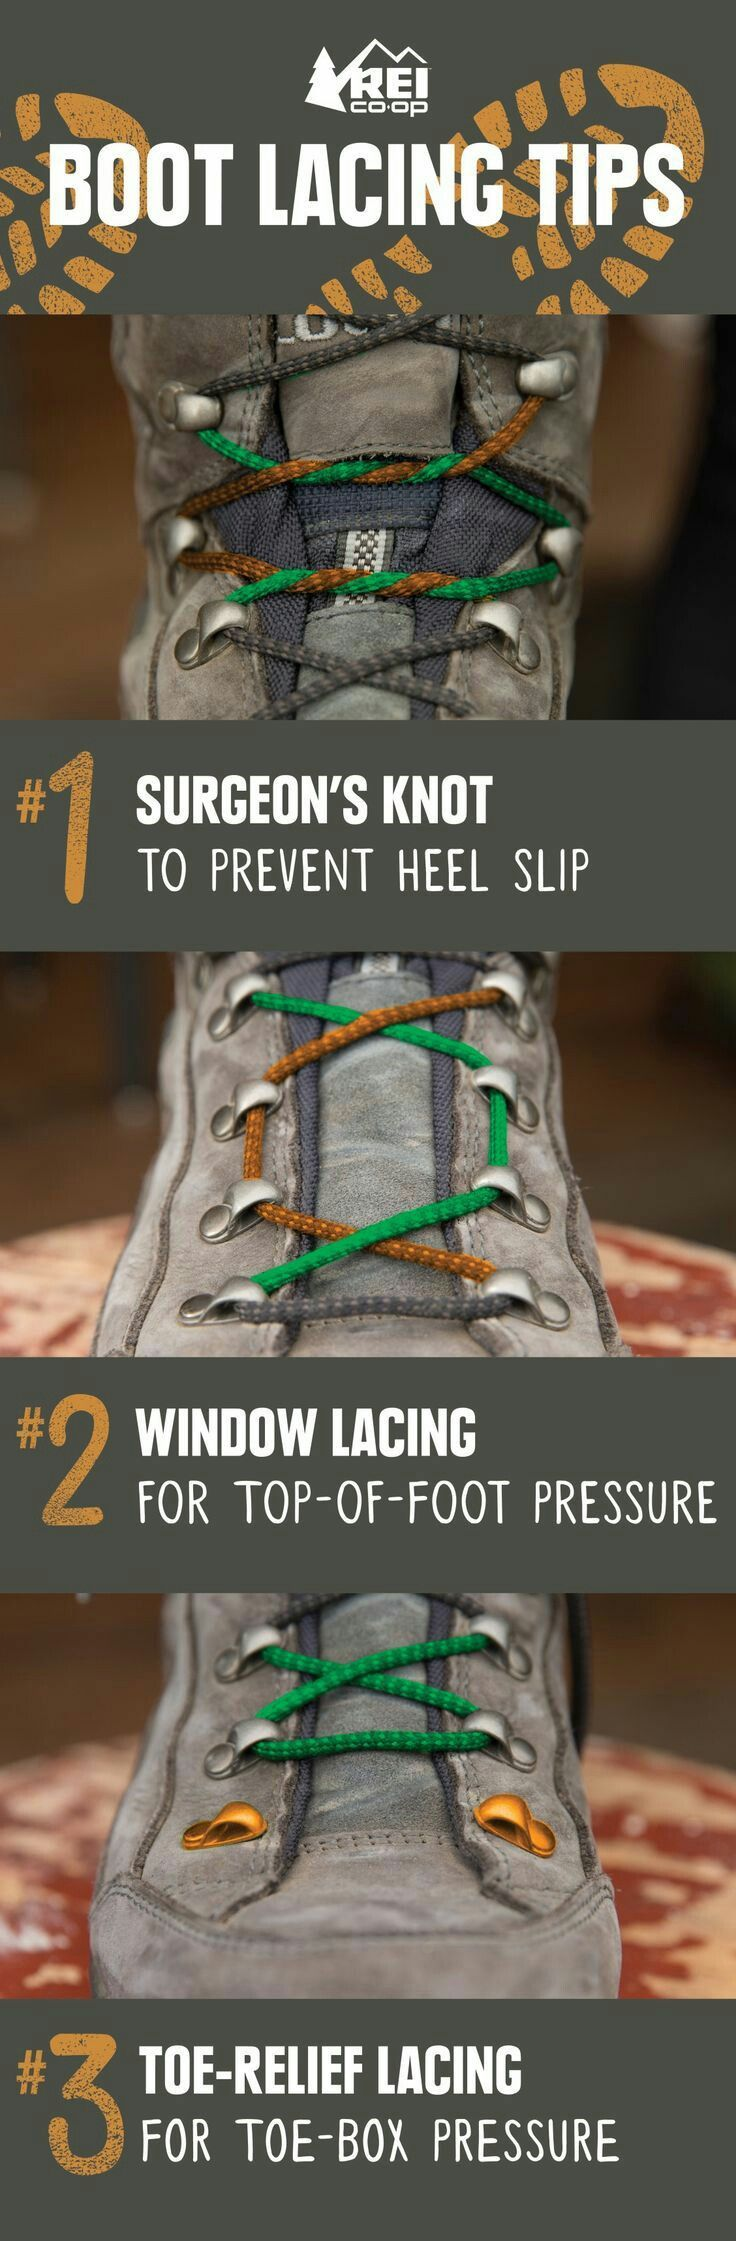 Most of us master shoe-tying in elementary school and don't give our laces much thought after that. If your hiking boots start to wear on your feet in uncomfortable ways, though, you'll be glad to learn a few new lacing tricks that could help improve your comfort!!